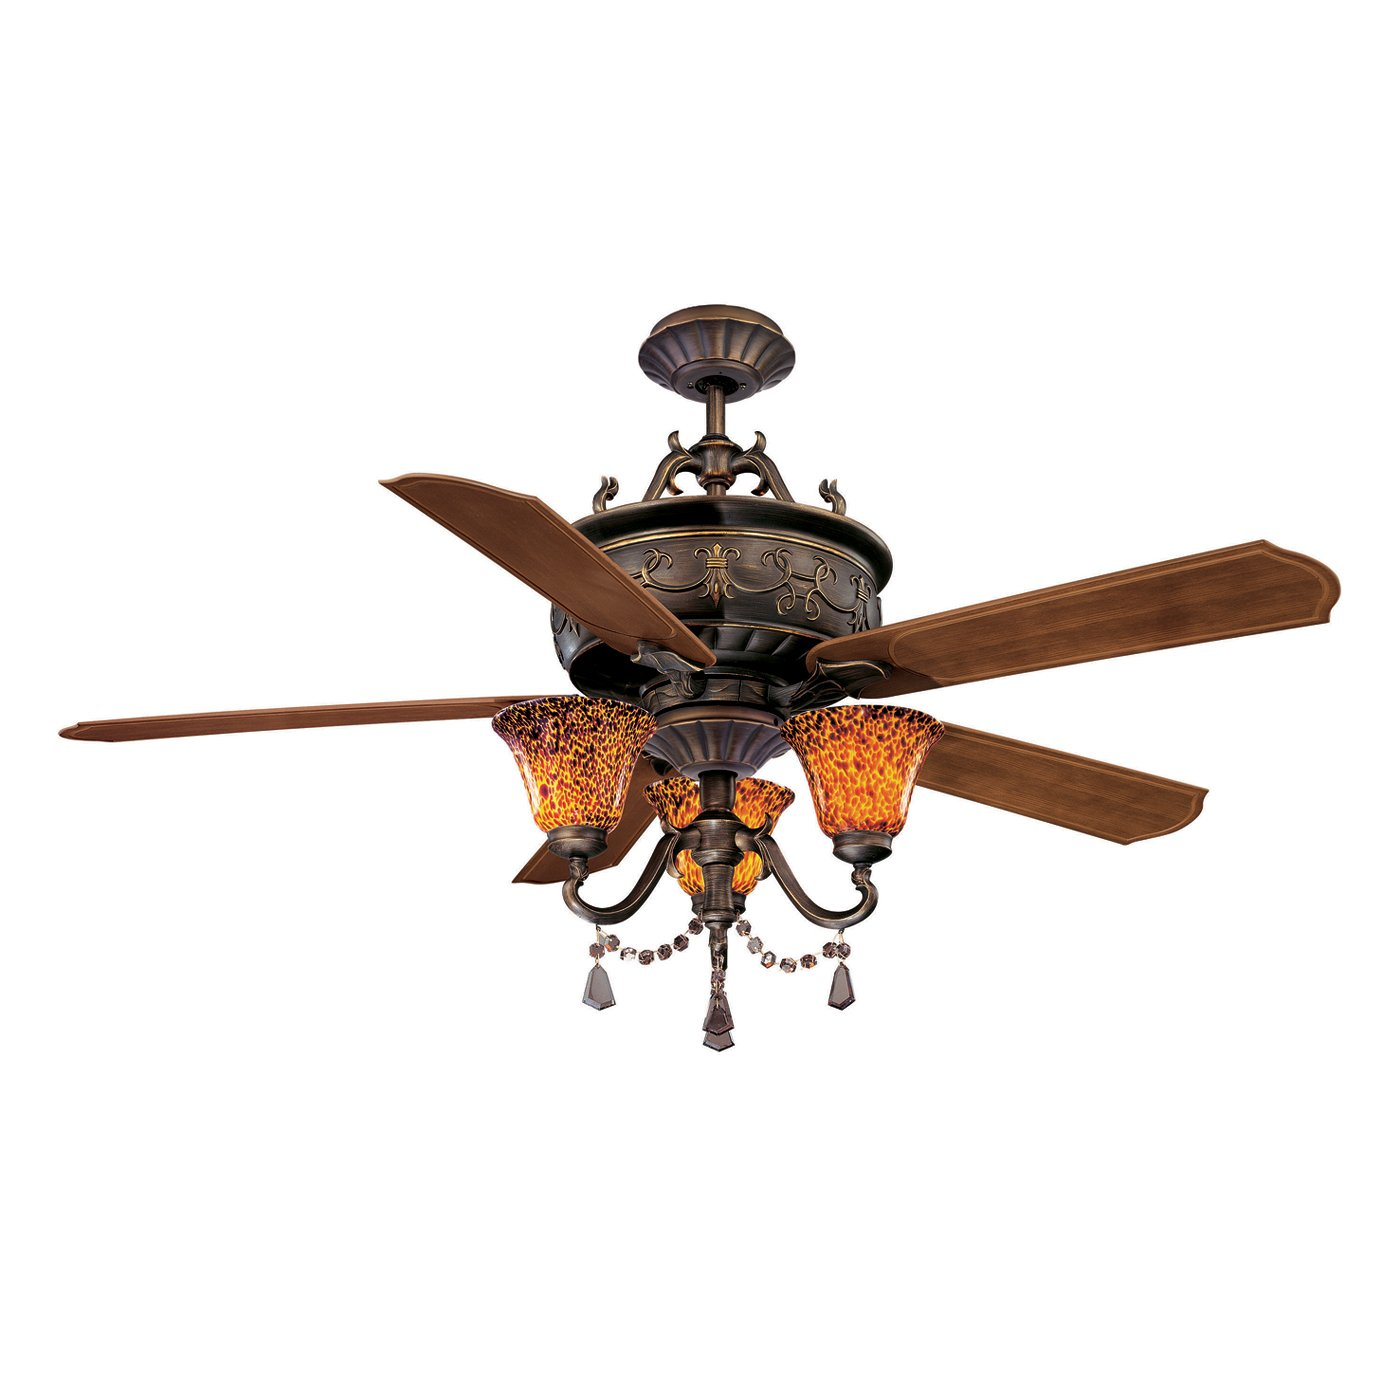 Interesting Ceiling Fans Top 10 Unusual Ceiling Fans 2018 Warisan Lighting